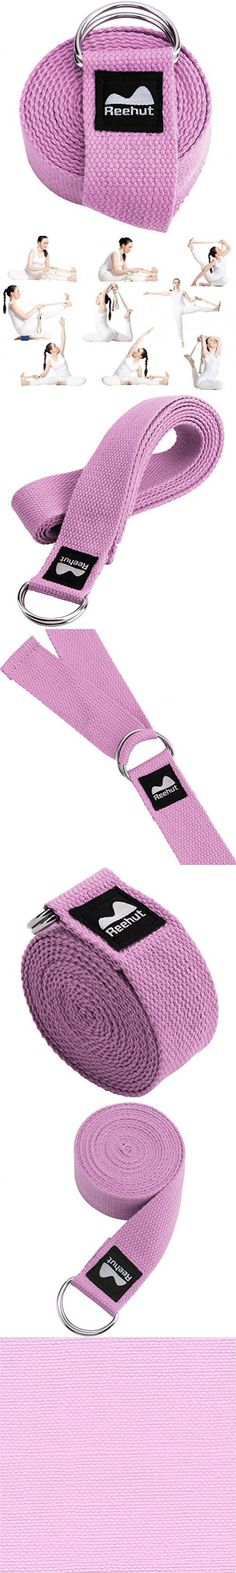 Reehut Fitness Exercise Yoga Strap (6ft) w/ Adjustable D-Ring Buckle for Stretching, Flexibility and Physical Therapy (Pink)